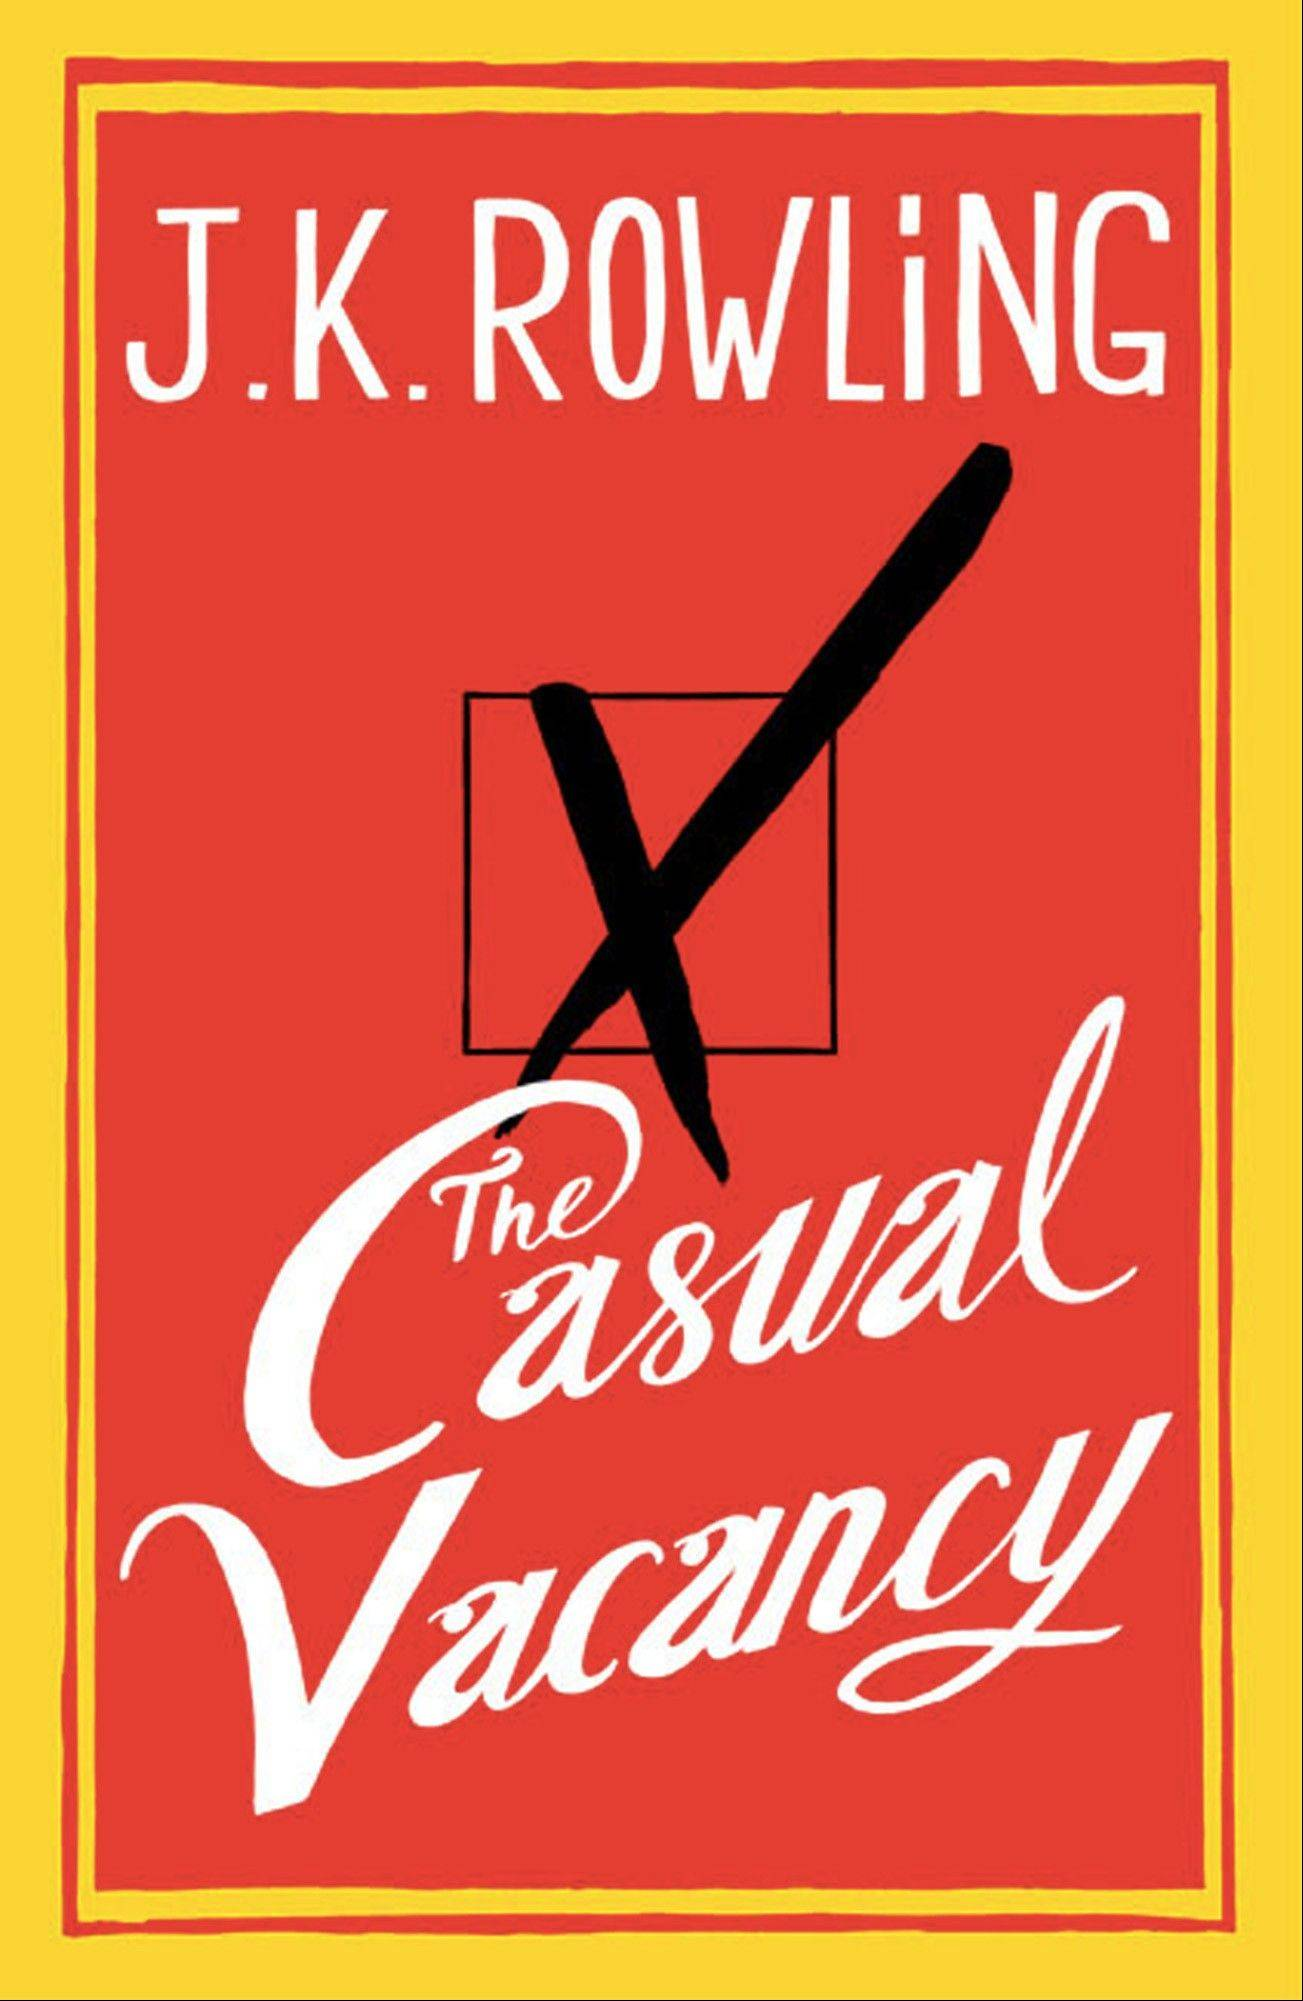 J.K. Rowling's debut novel for adults worth a read